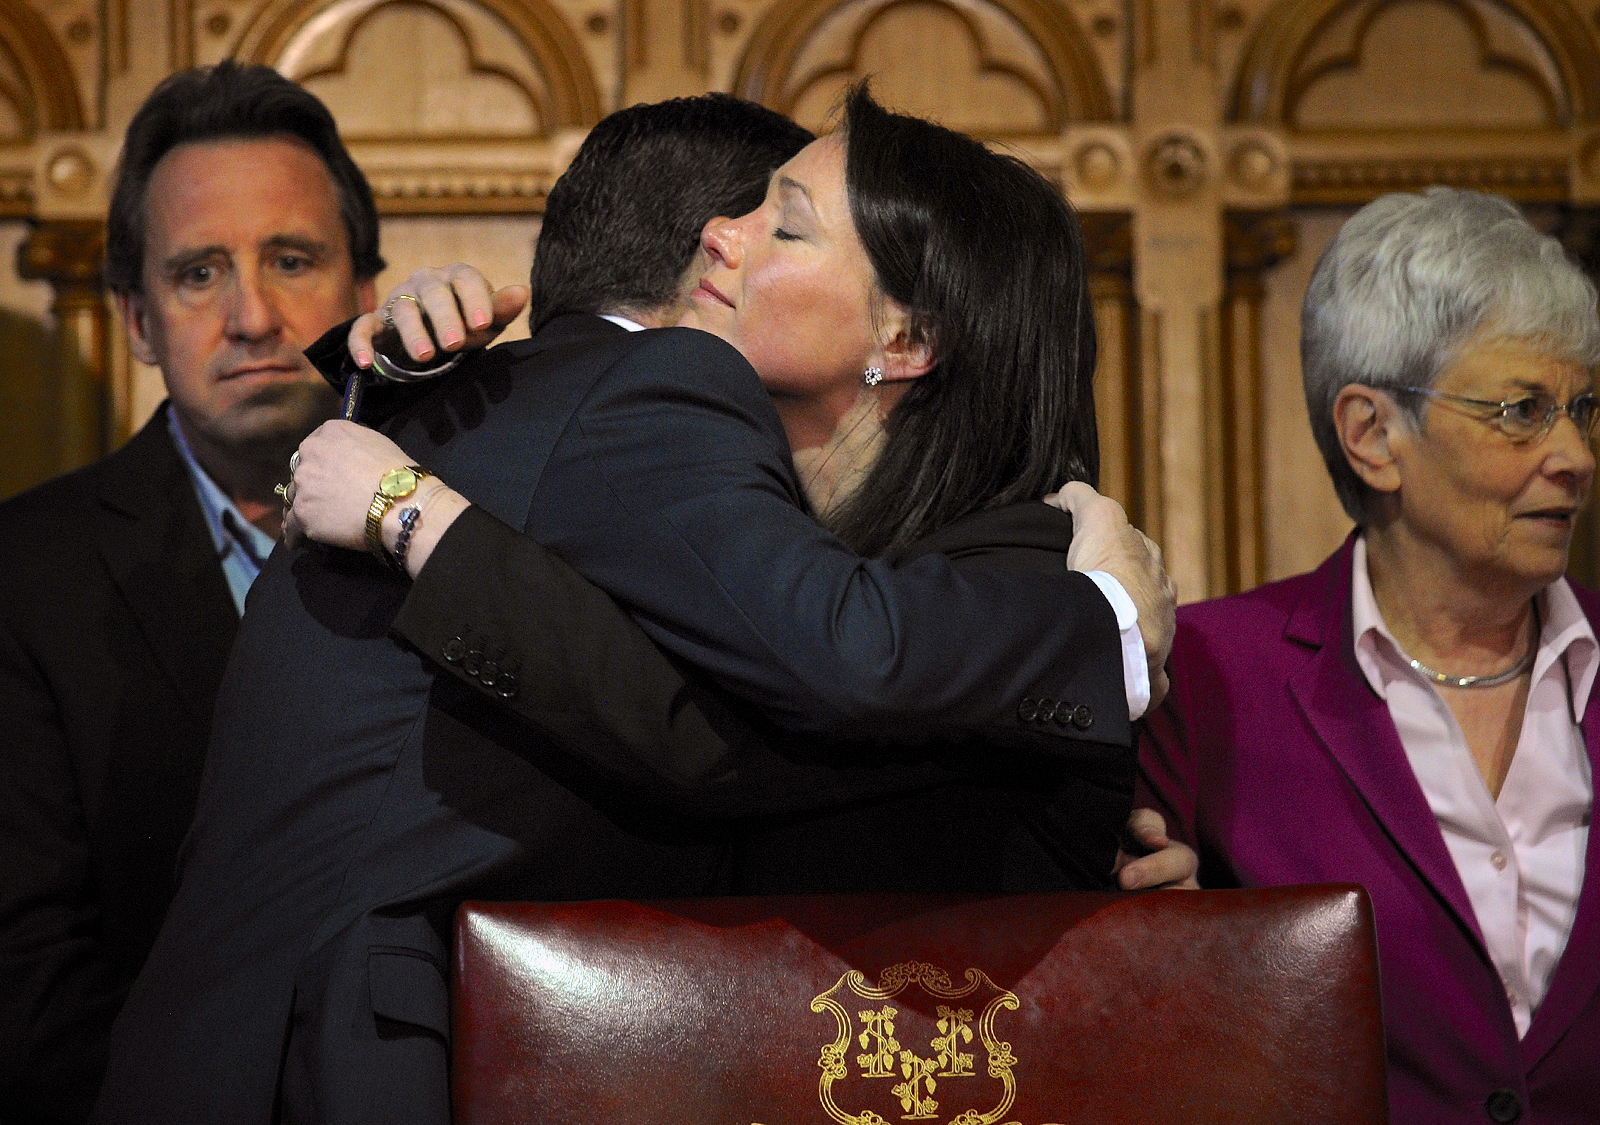 Governor Dan Malloy embraces Nicole Hockley, whose son was killed in the massacre at Sandy Hook Elementary along with 19 other first graders.